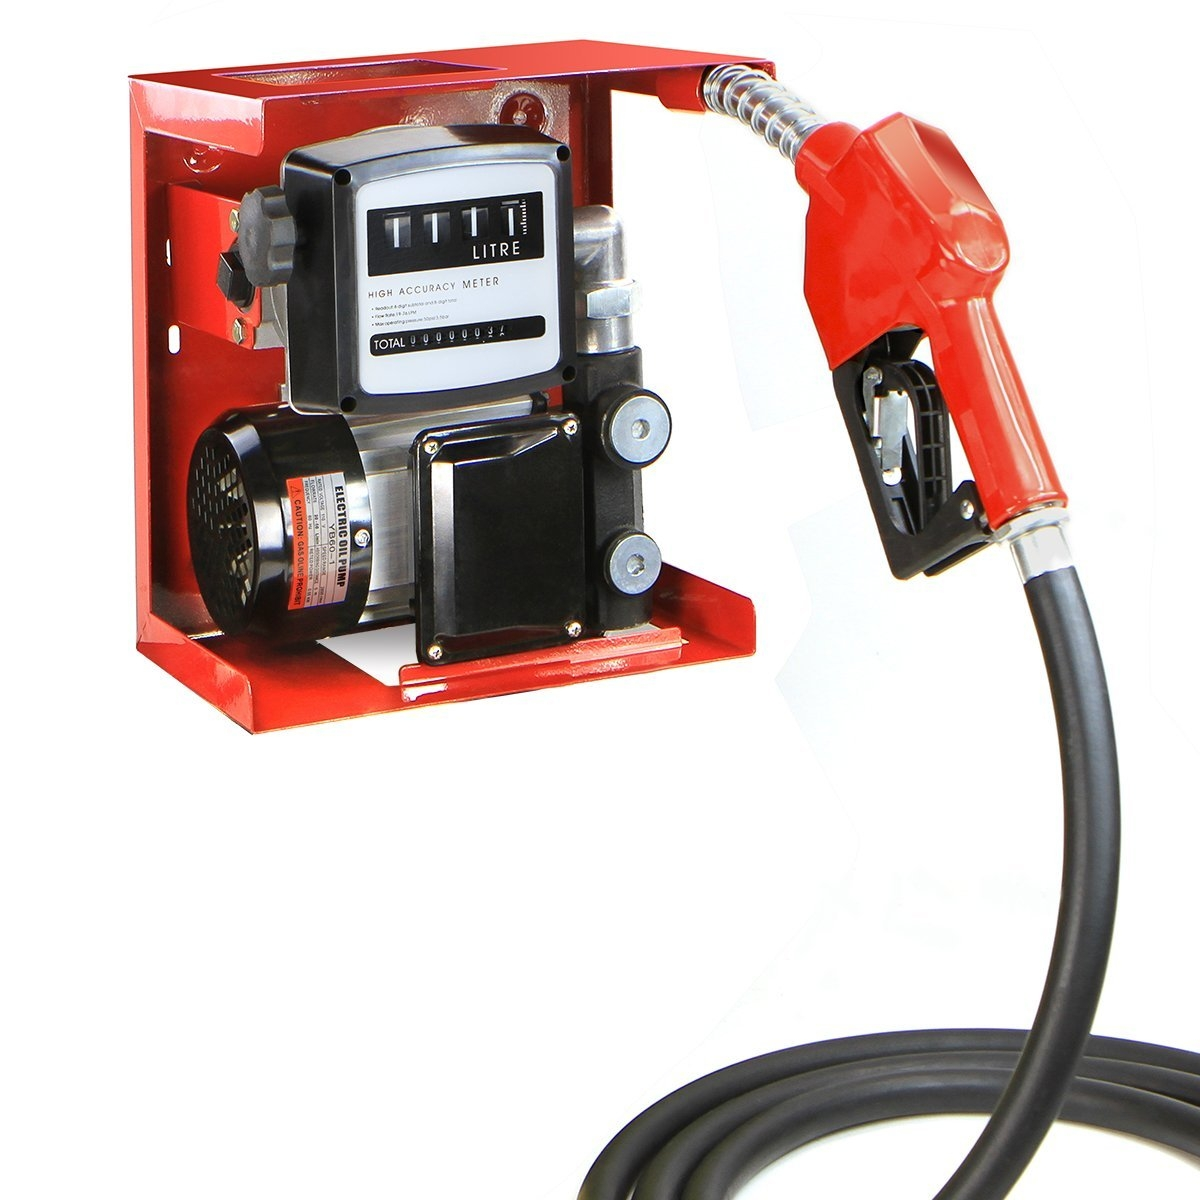 110v Electric Oil Transfer Pump With Meter Hose & Nozzle